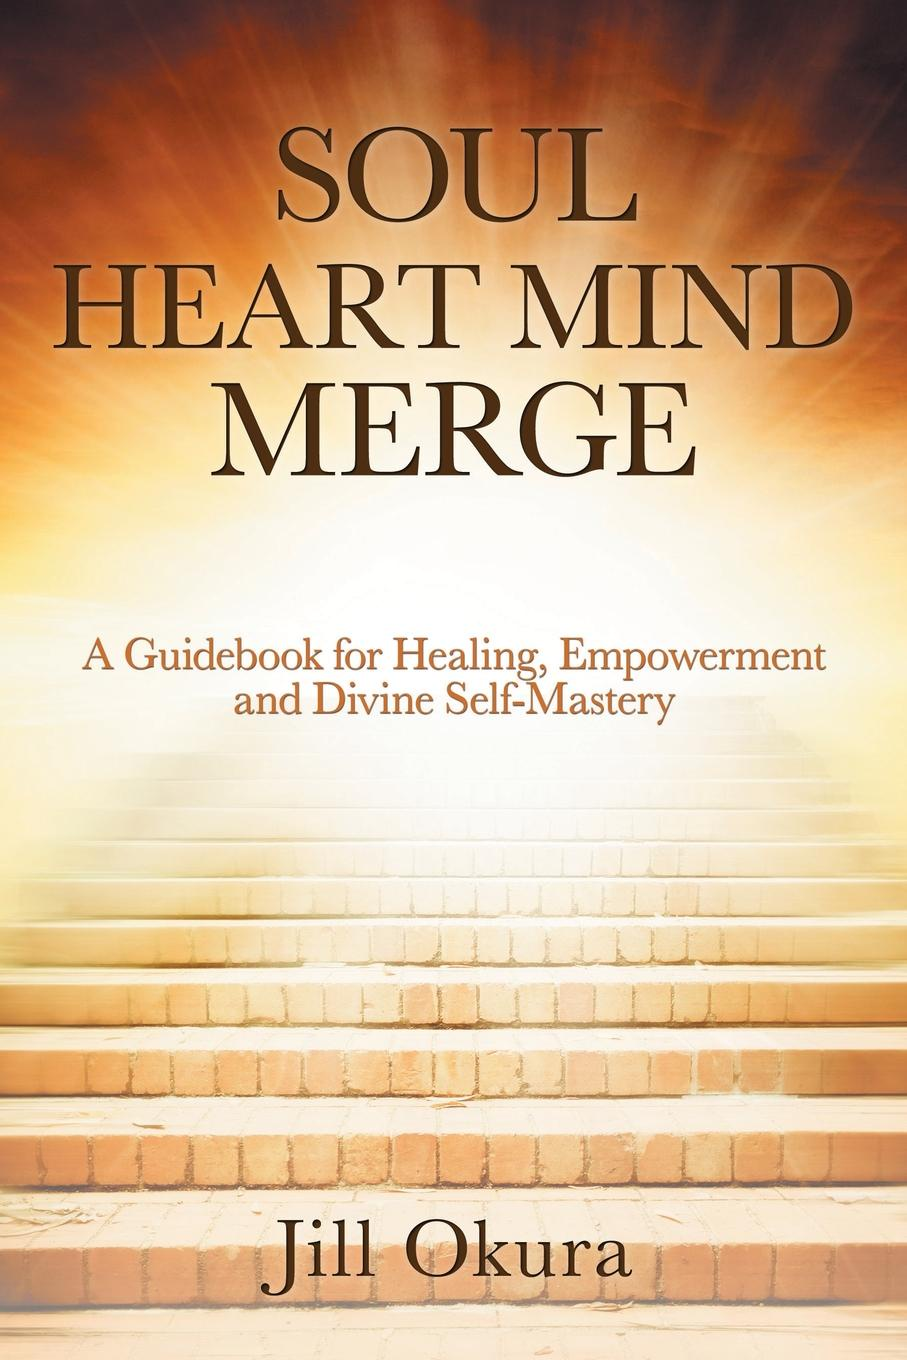 лучшая цена Jill Okura Soul Heart Mind Merge. A Guidebook for Healing, Empowerment and Divine Self-Mastery